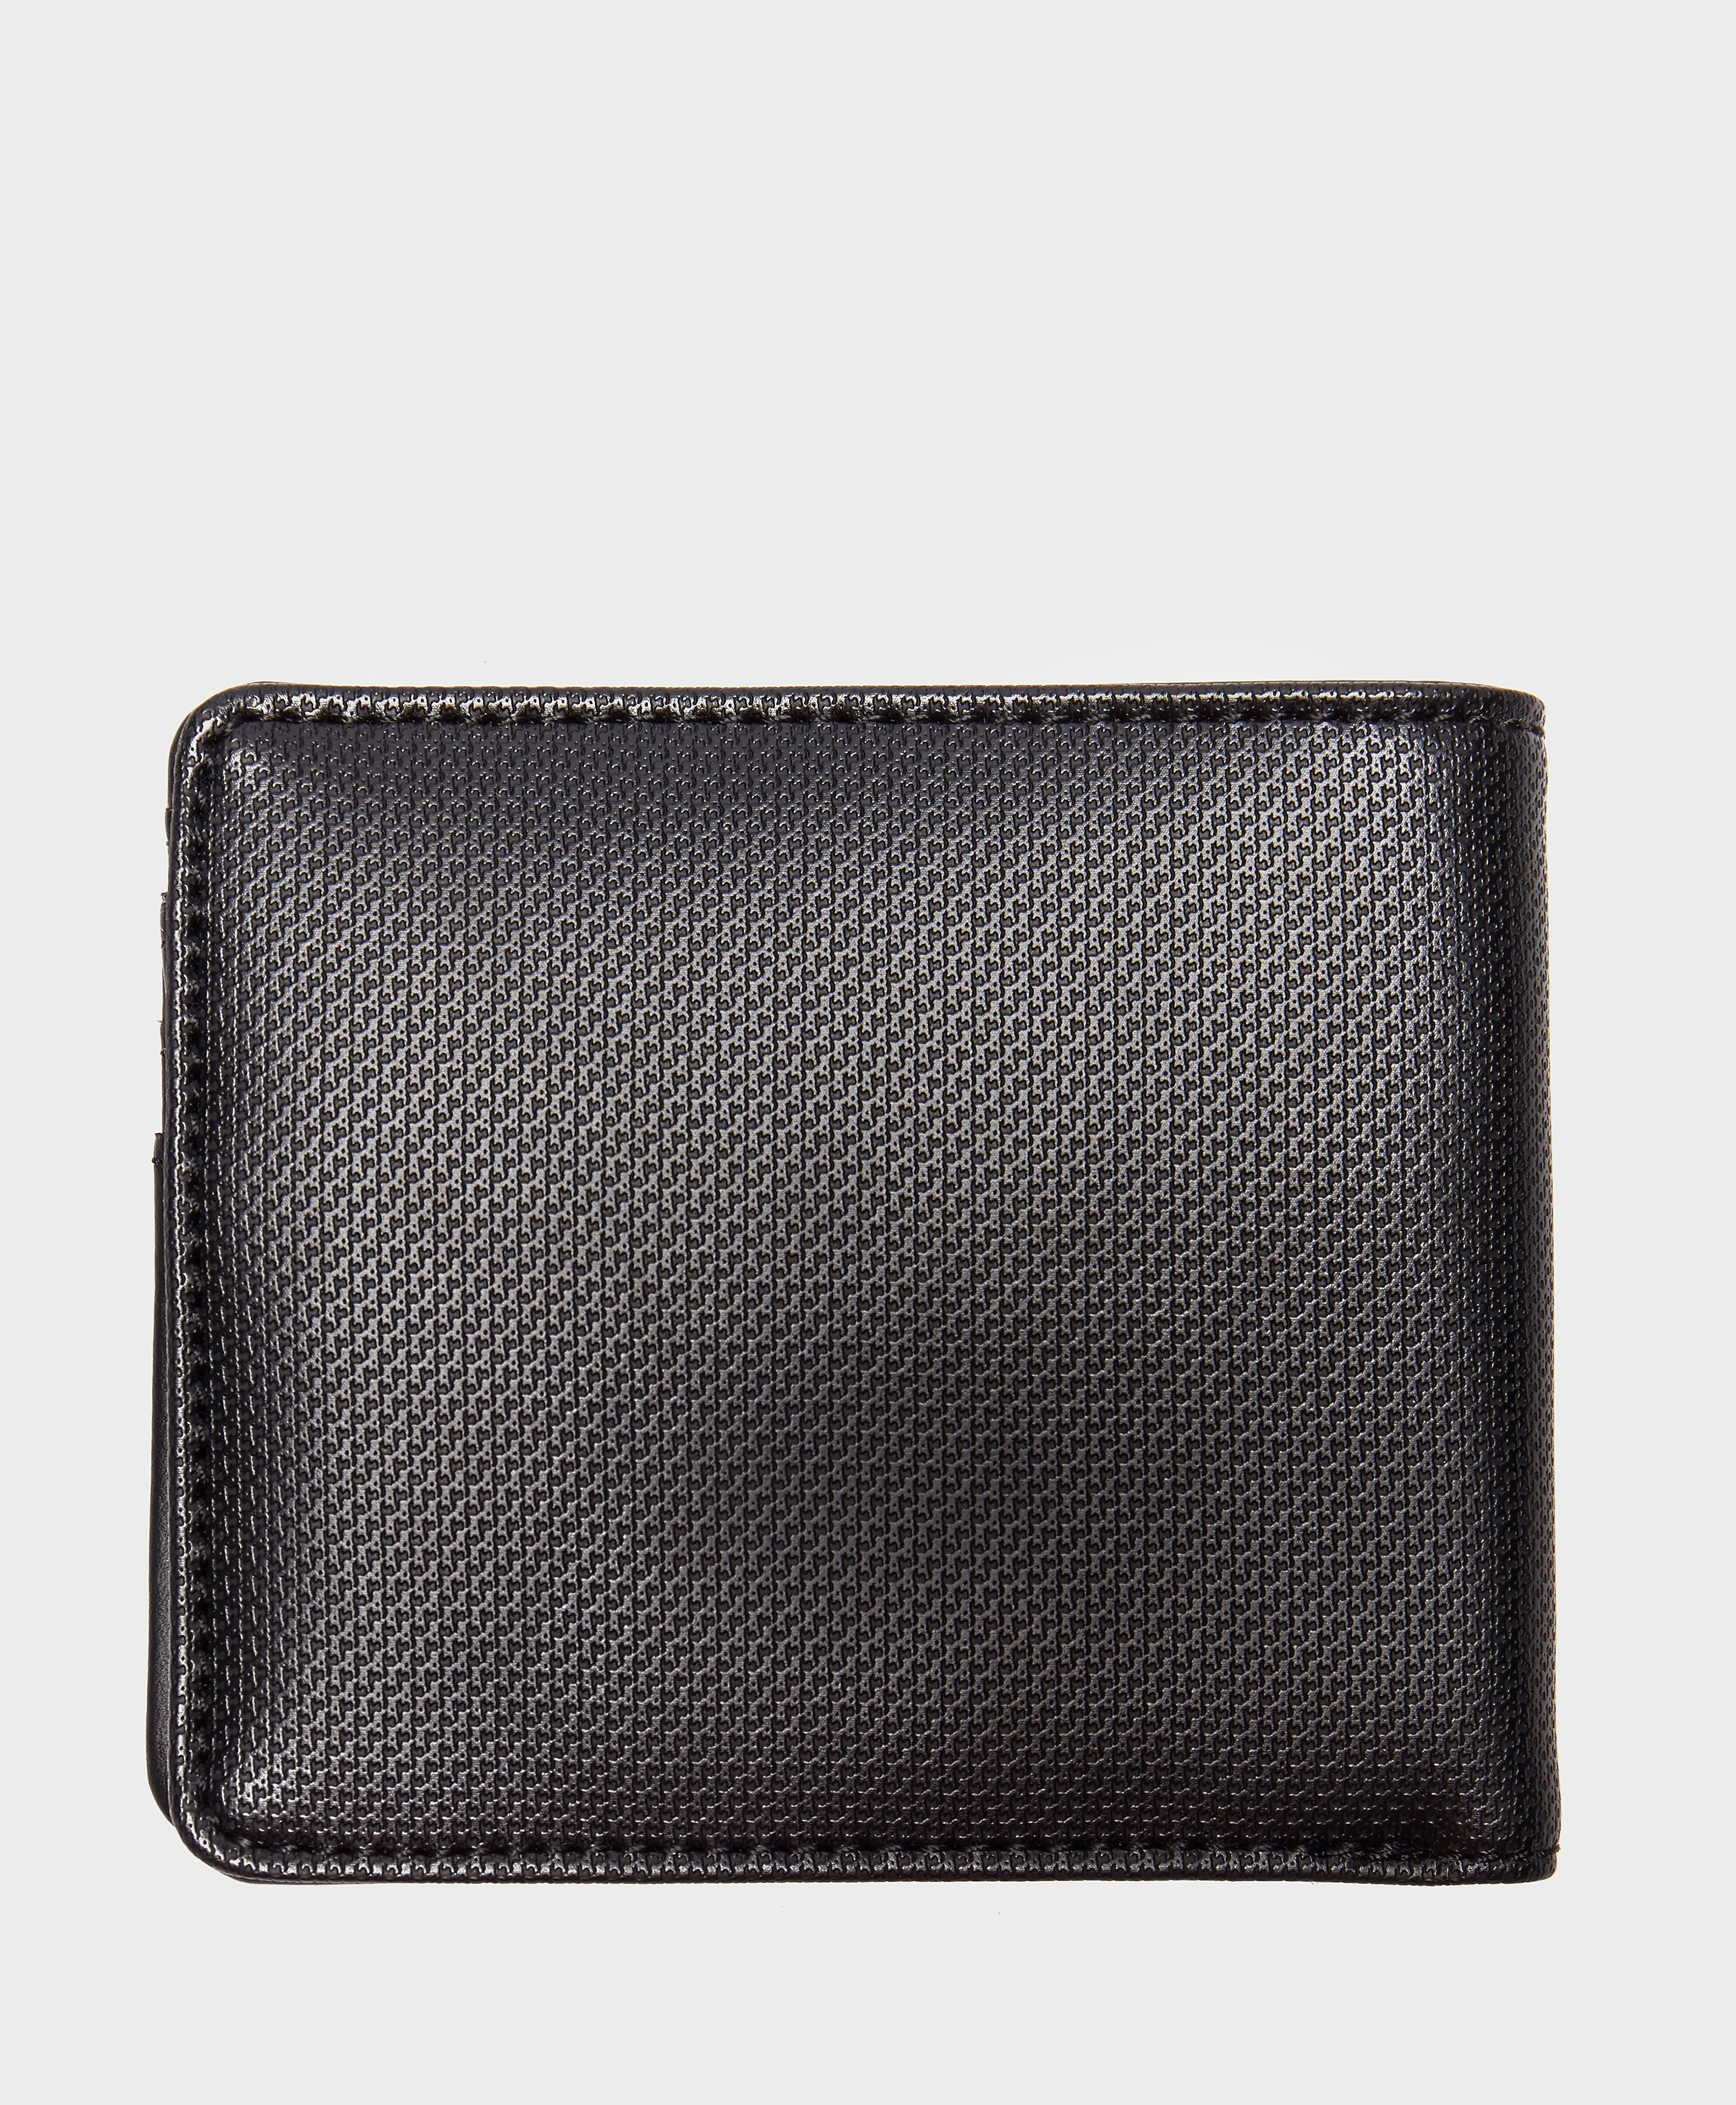 Fred Perry Pique Wallet